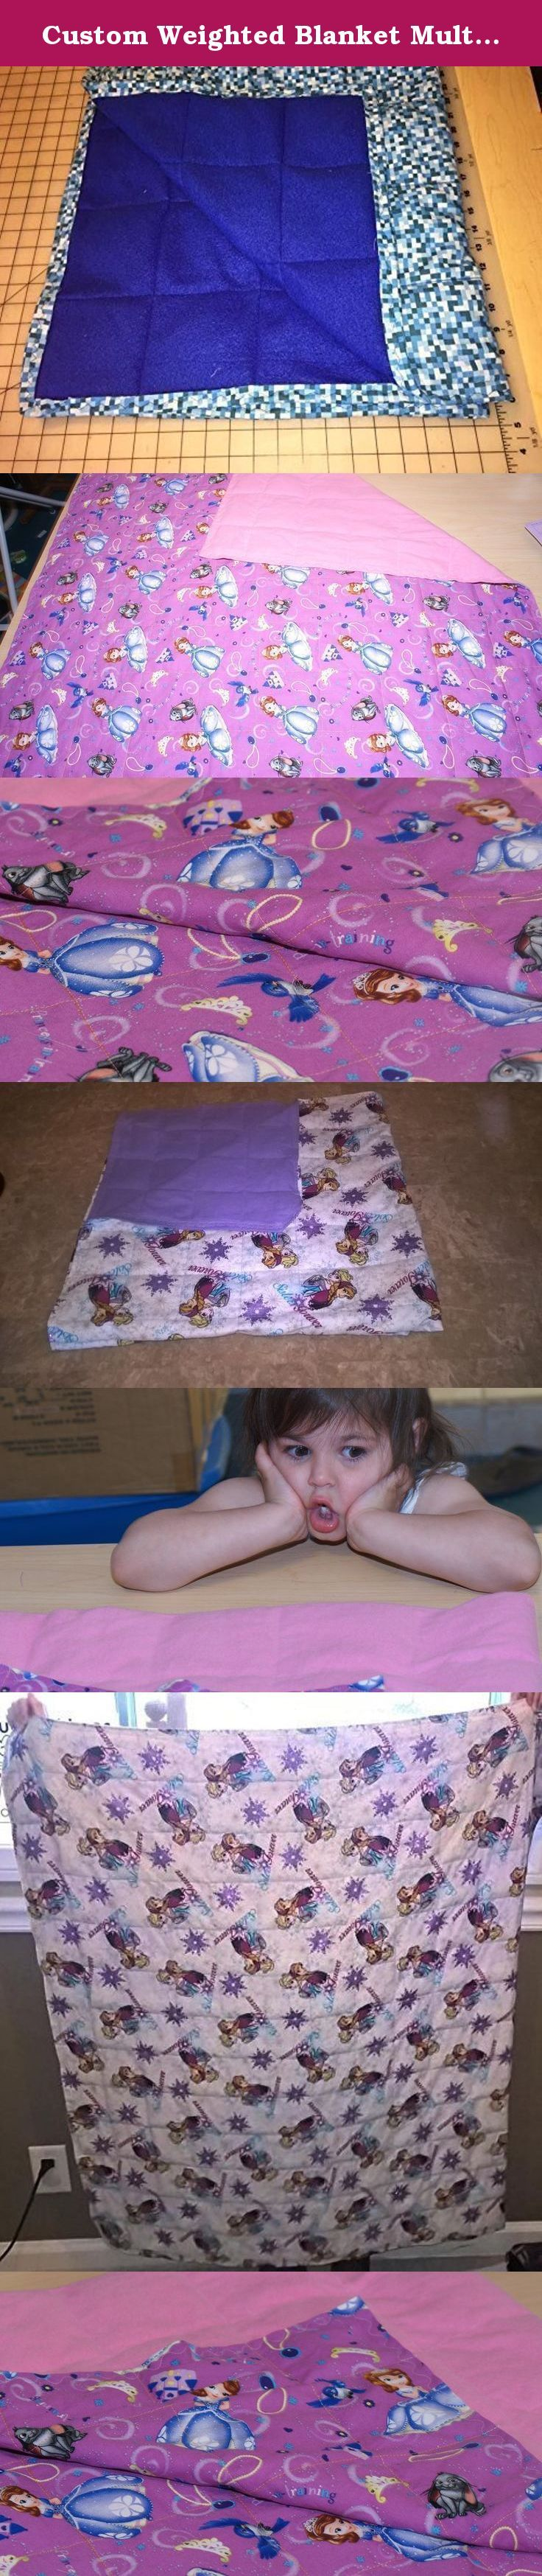 Custom Weighted Blanket Multiple Size Options (helps with sensory conditions). **Weighted blankets are not intended for children under the age of 2 years old and shouldn't be more than 10% of body weight plus 1 pound.** Safety guidelines strictly followed when fulfilling orders. Weighted blankets are used to calm the senses. To order please select the size you want with the standard weight. Select additional weight as needed, then provide fabric choices(cotton/cotton, or cotton/flannel…